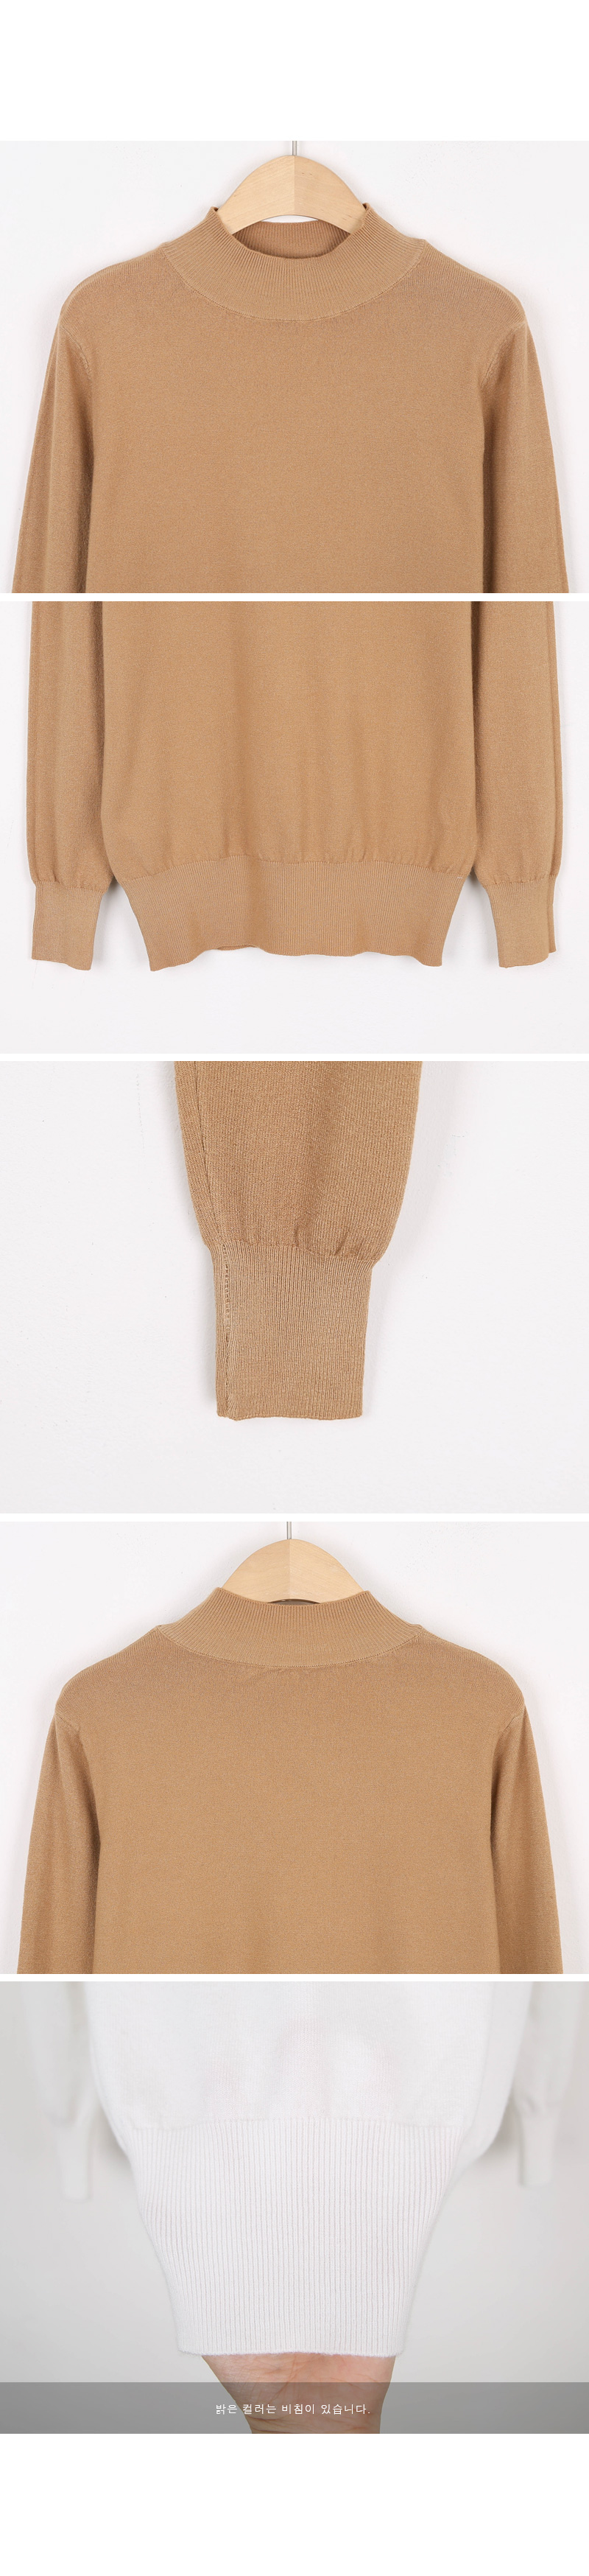 Wool Standard Half Neck Knit